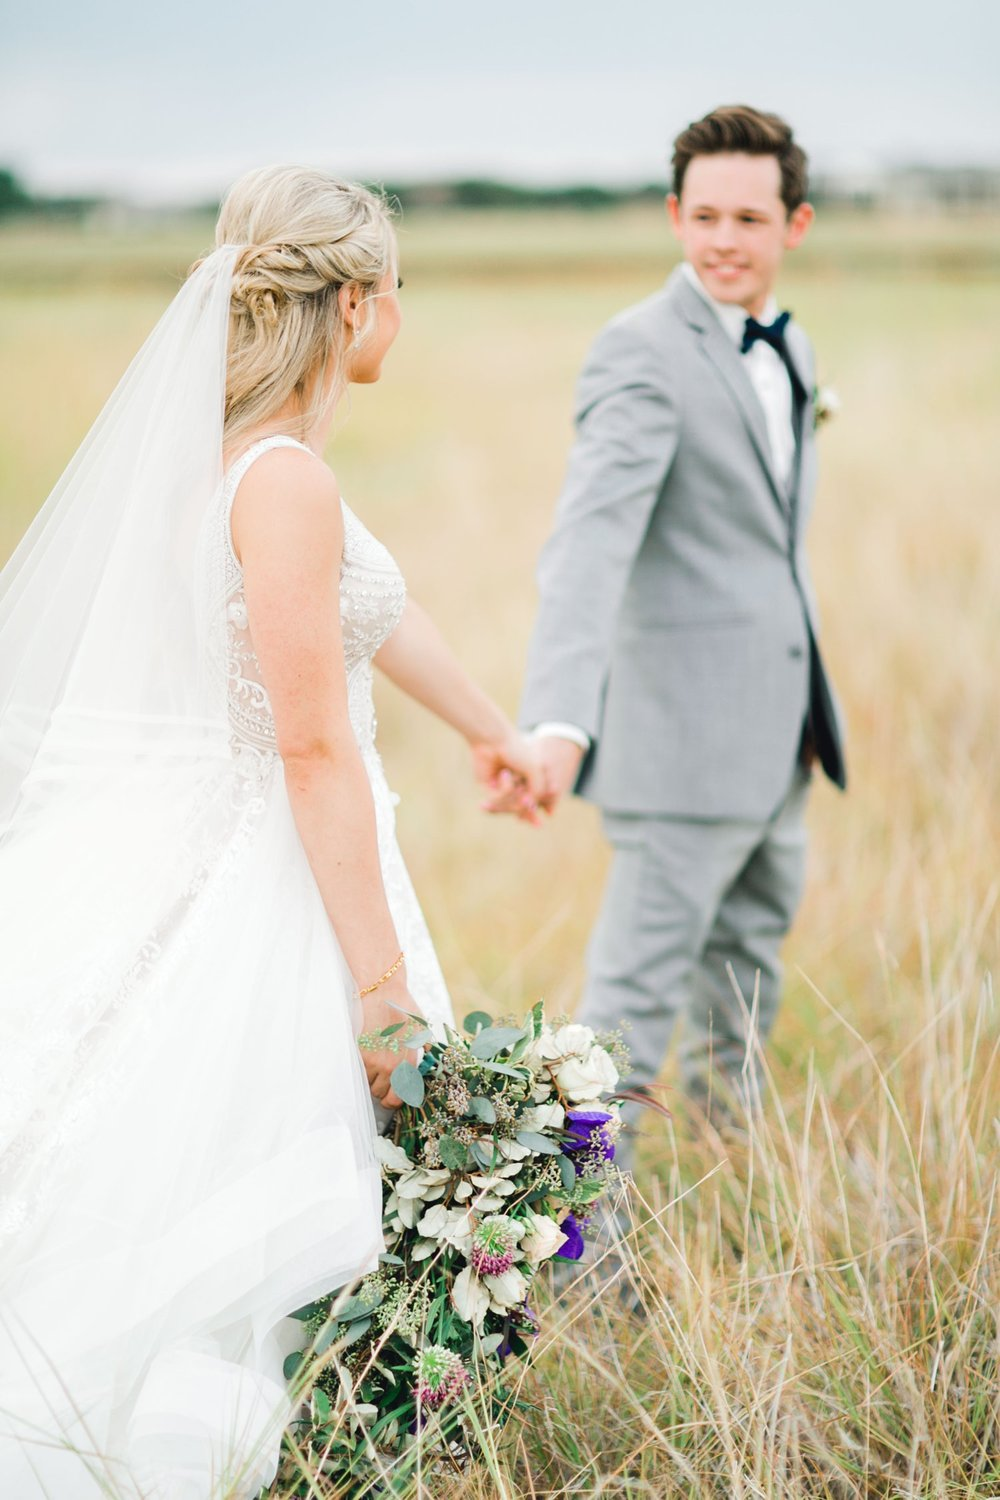 KAITLYN_AND_ZACHARY_HUNT_ALLEEJ_LUBBOCK_WEDDING_PHOTOGRAPHER_EBERLEY_BROOKS_EVENTS_0140.jpg